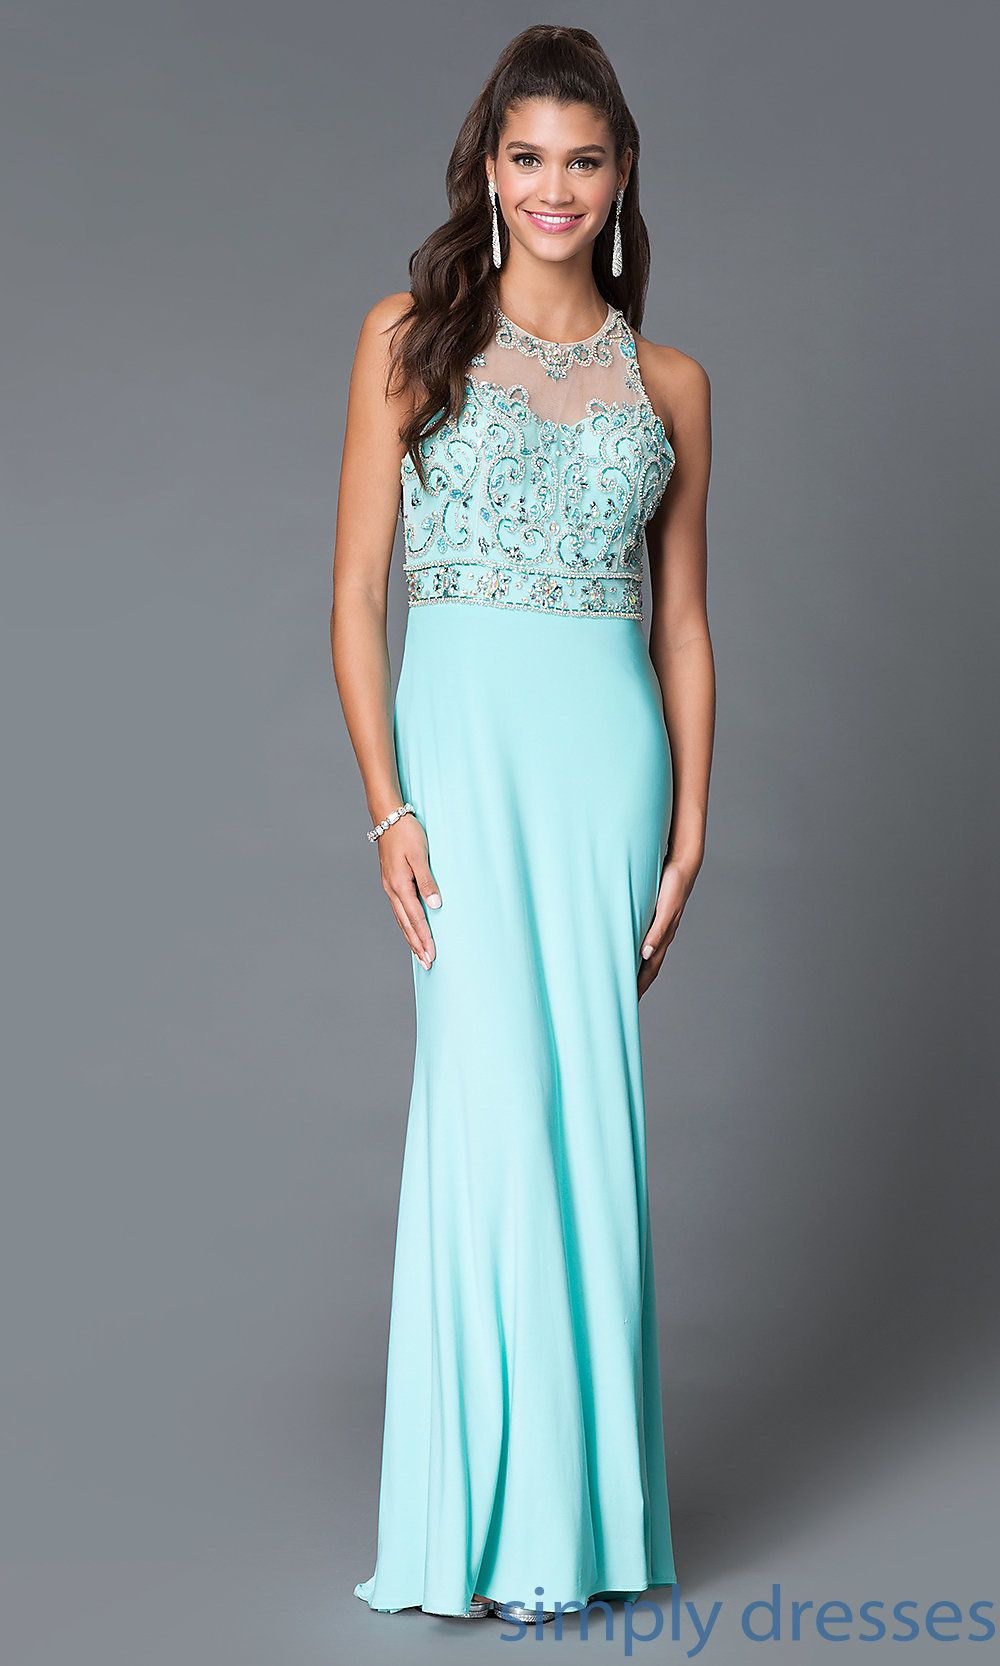 Homecoming Dresses, Formal Prom Dresses, Evening Wear: Long Open ...